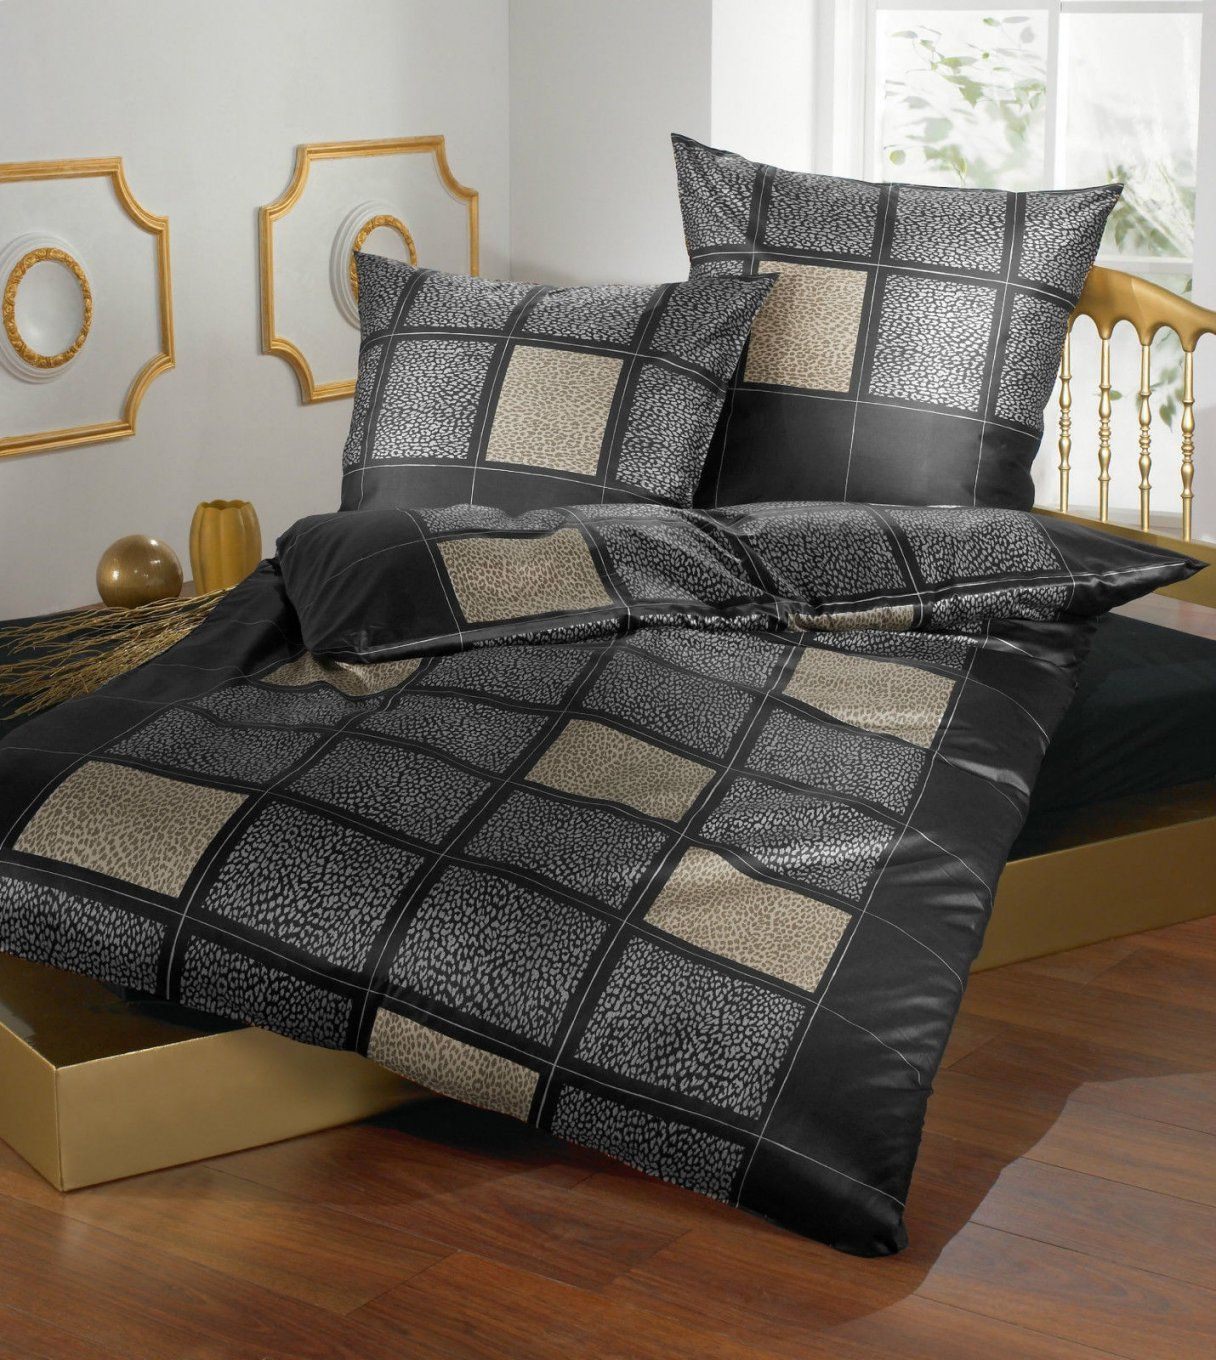 bettw sche 155x200 mako satin haus design ideen. Black Bedroom Furniture Sets. Home Design Ideas